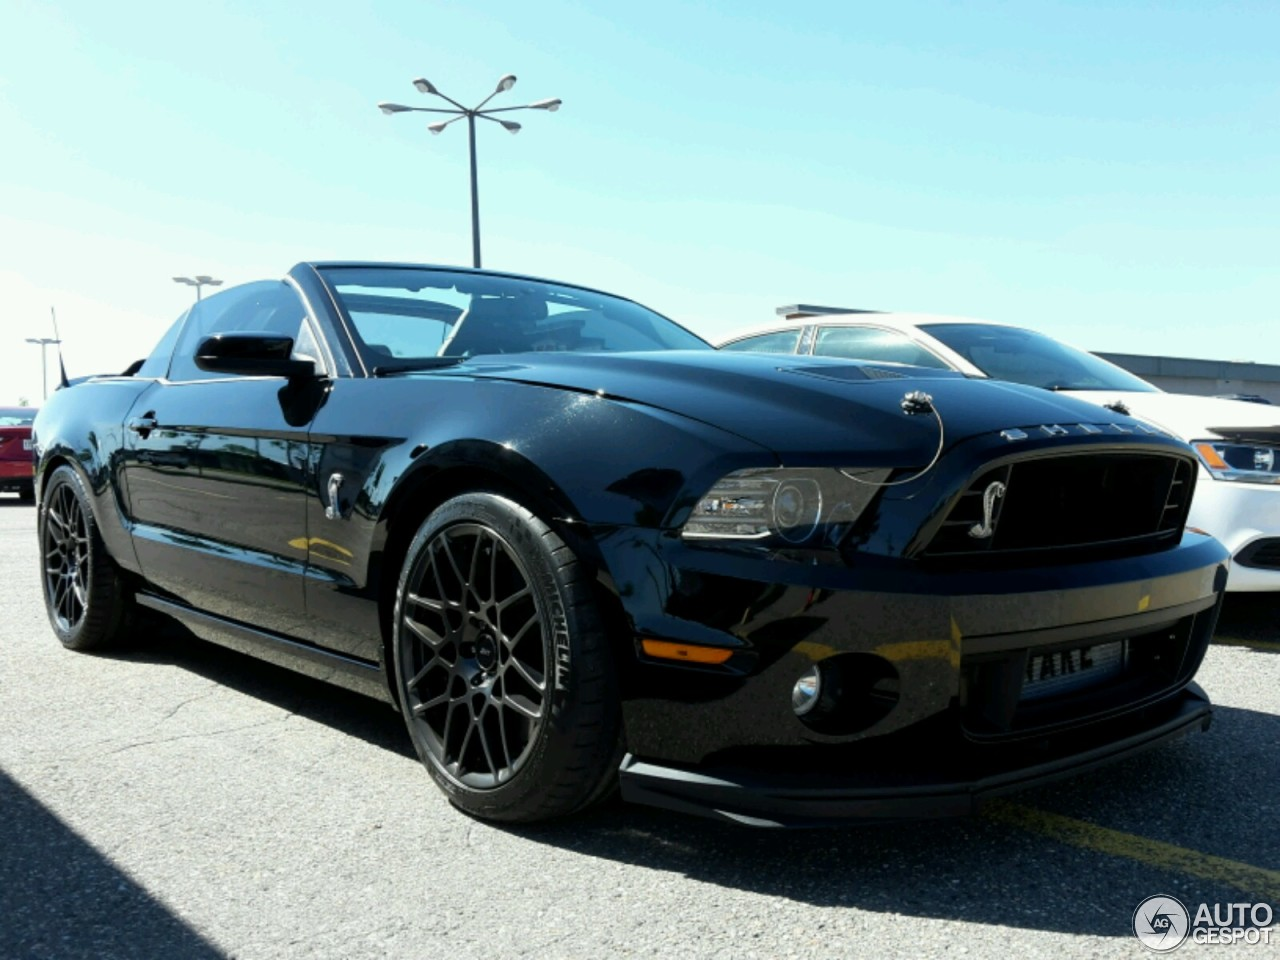 ford mustang shelby gt500 convertible 2014 3 september 2015 autogespot. Black Bedroom Furniture Sets. Home Design Ideas